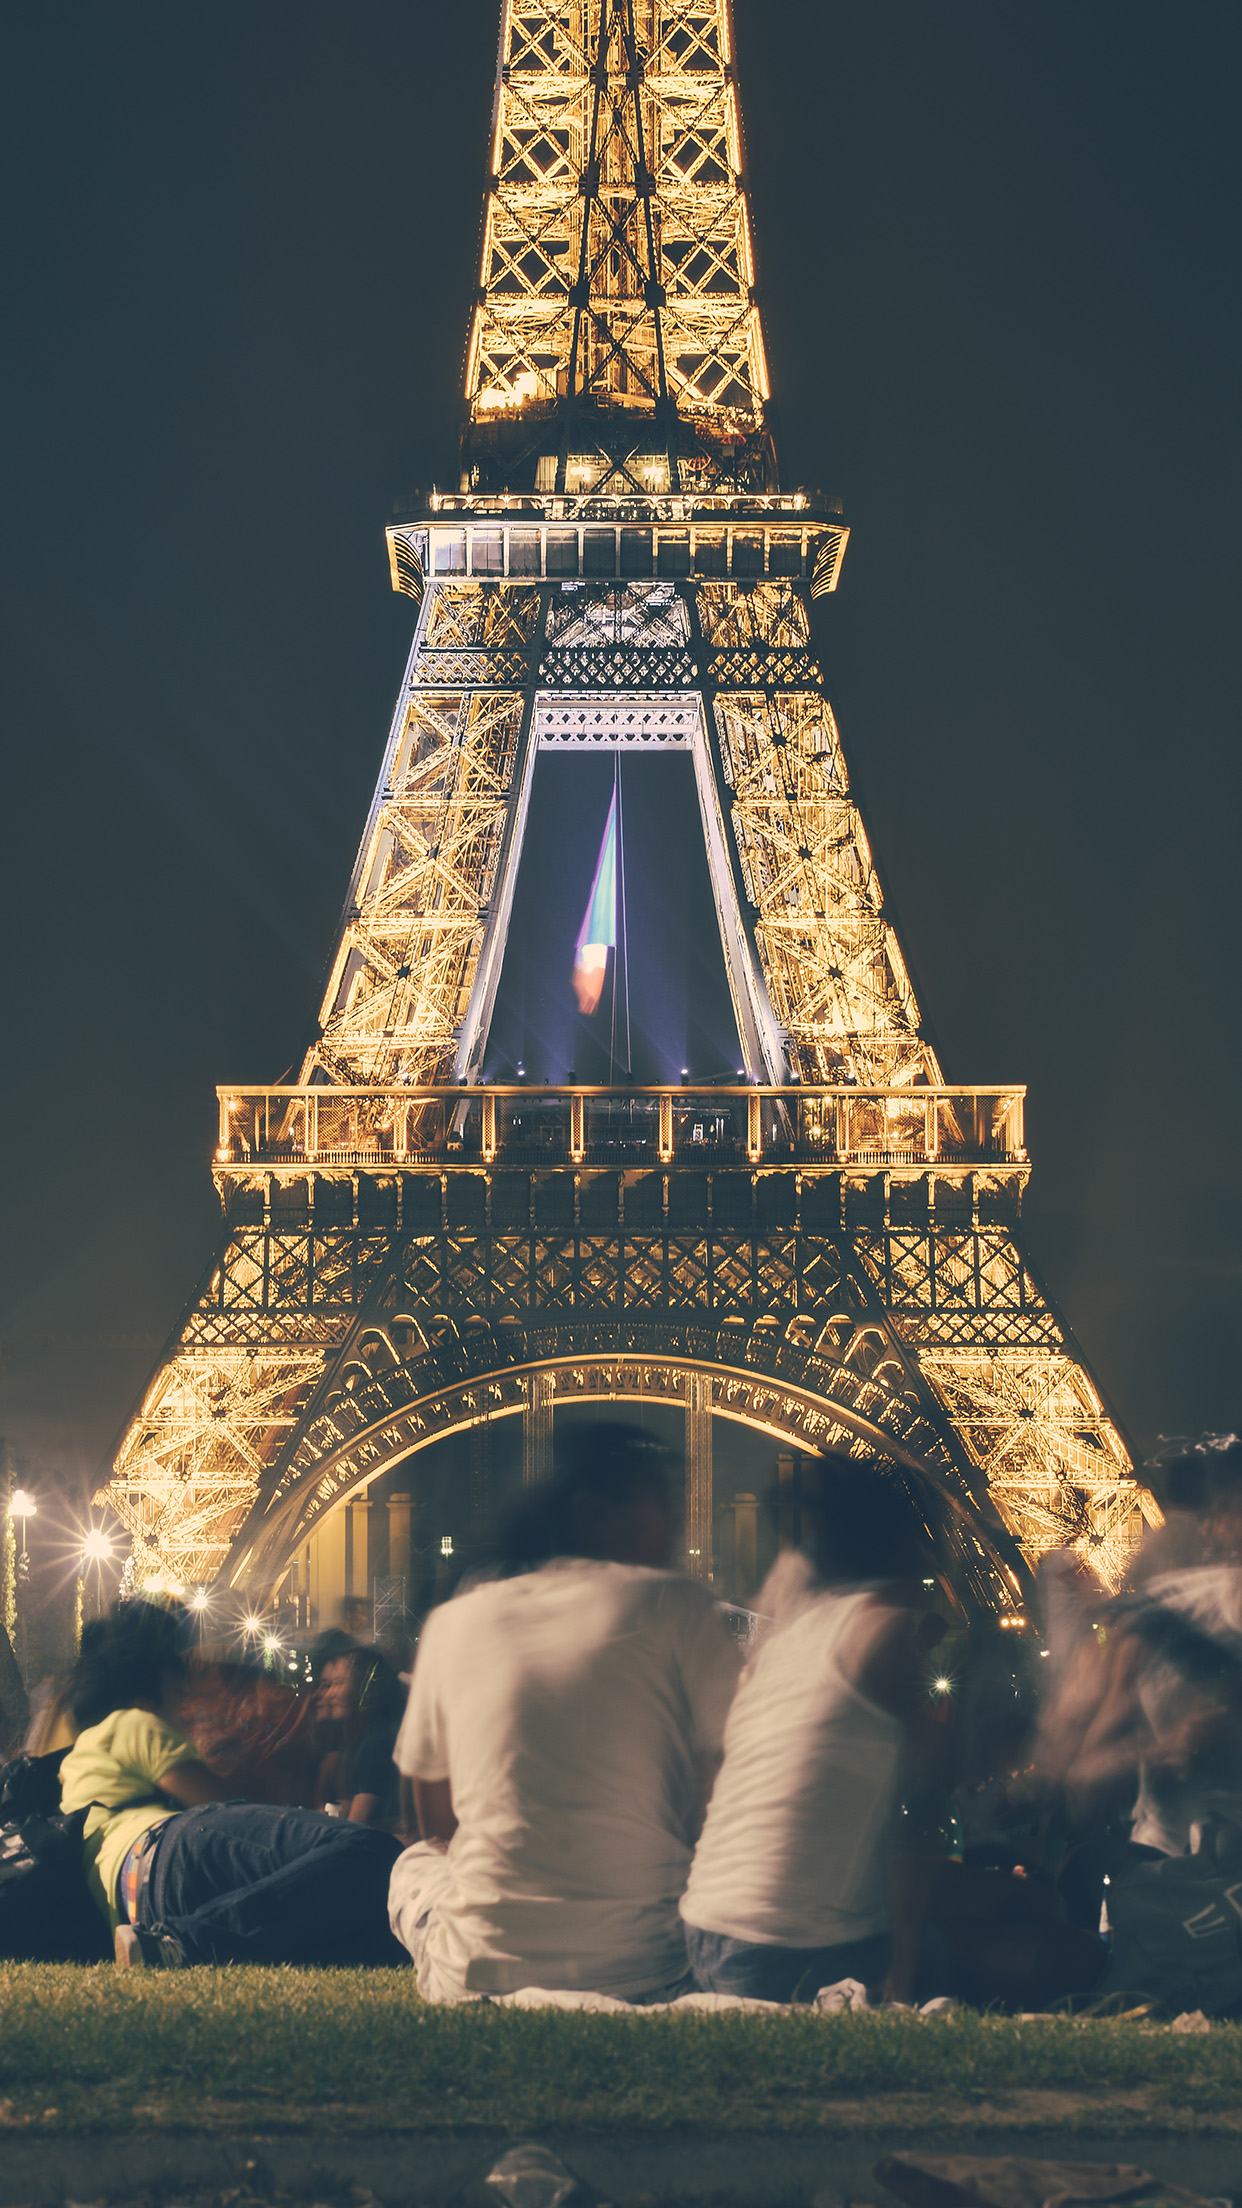 Happy Paris Eiffel Tower France Tour Night City Android Wallpaper Android Hd Wallpapers